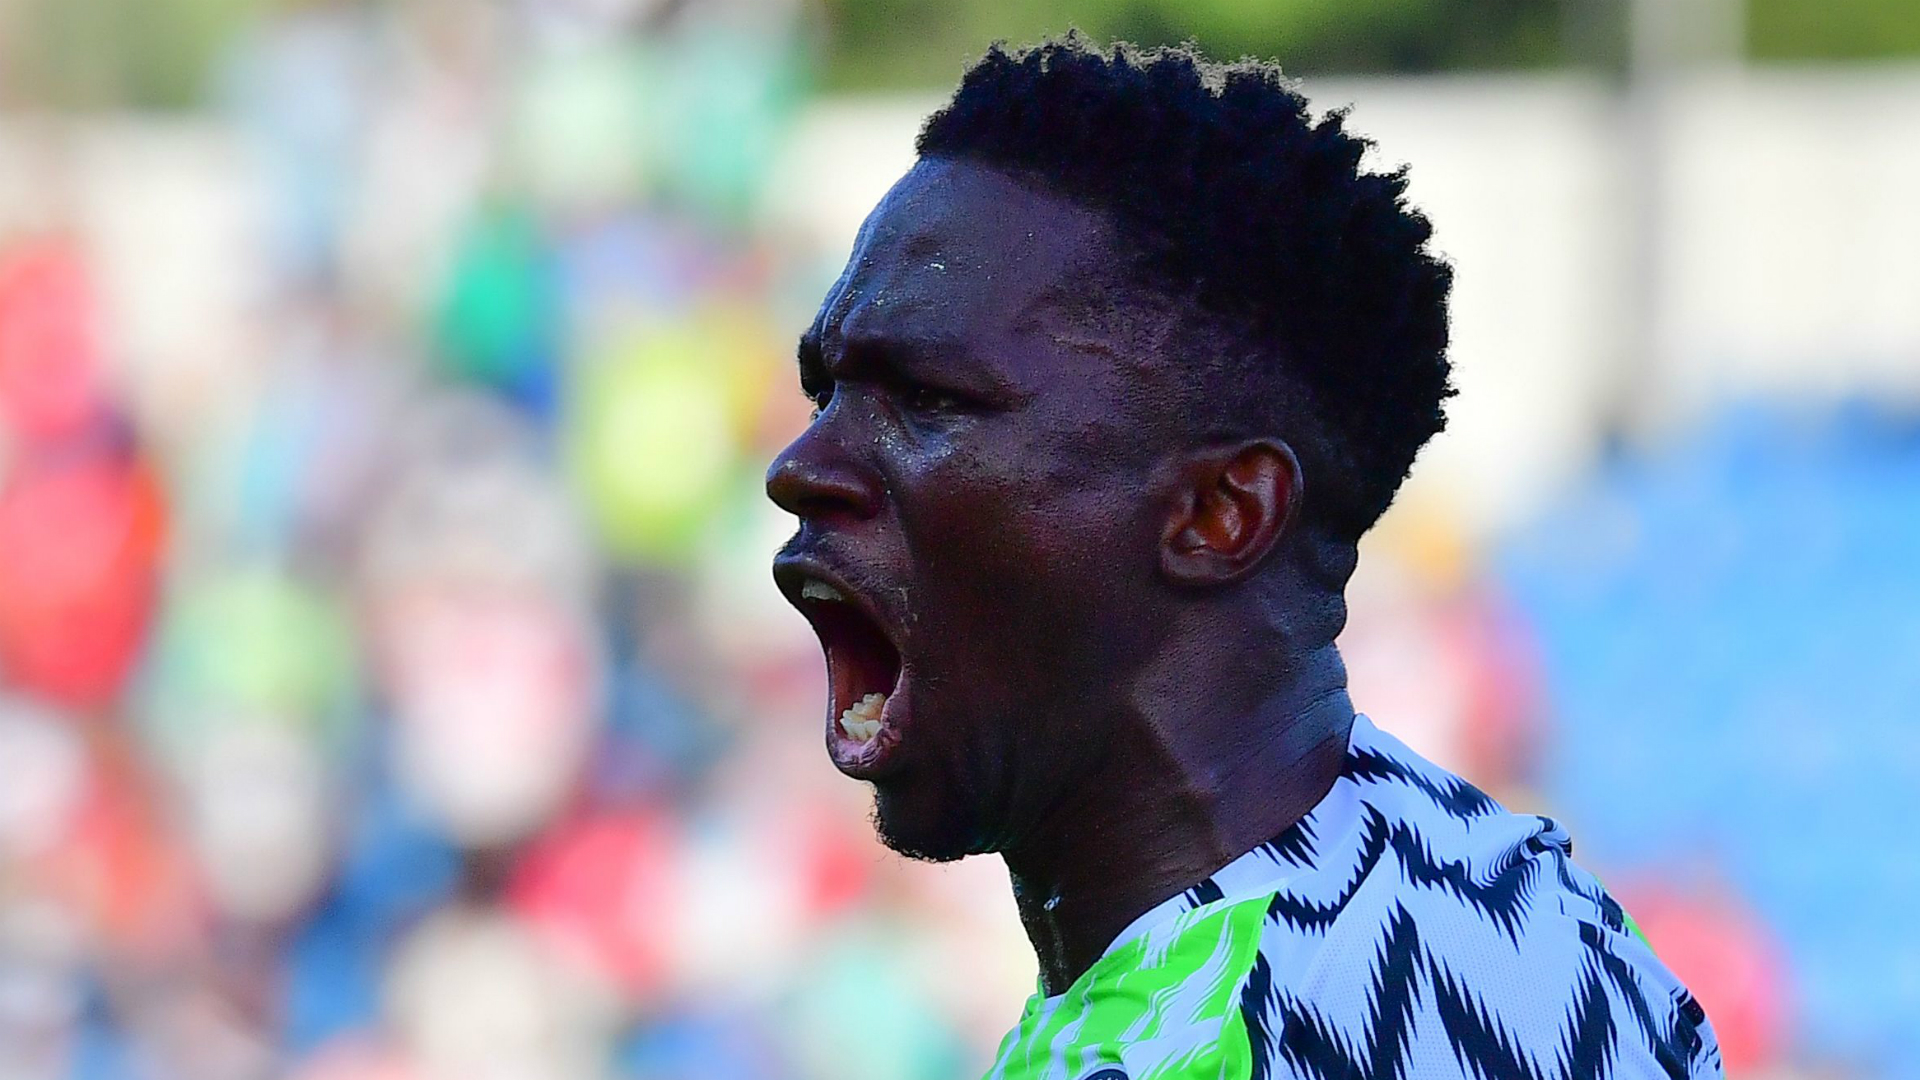 Afcon 2019 EXCLUSIVE: Omeruo has everything to lead Nigeria to glory - Yobo